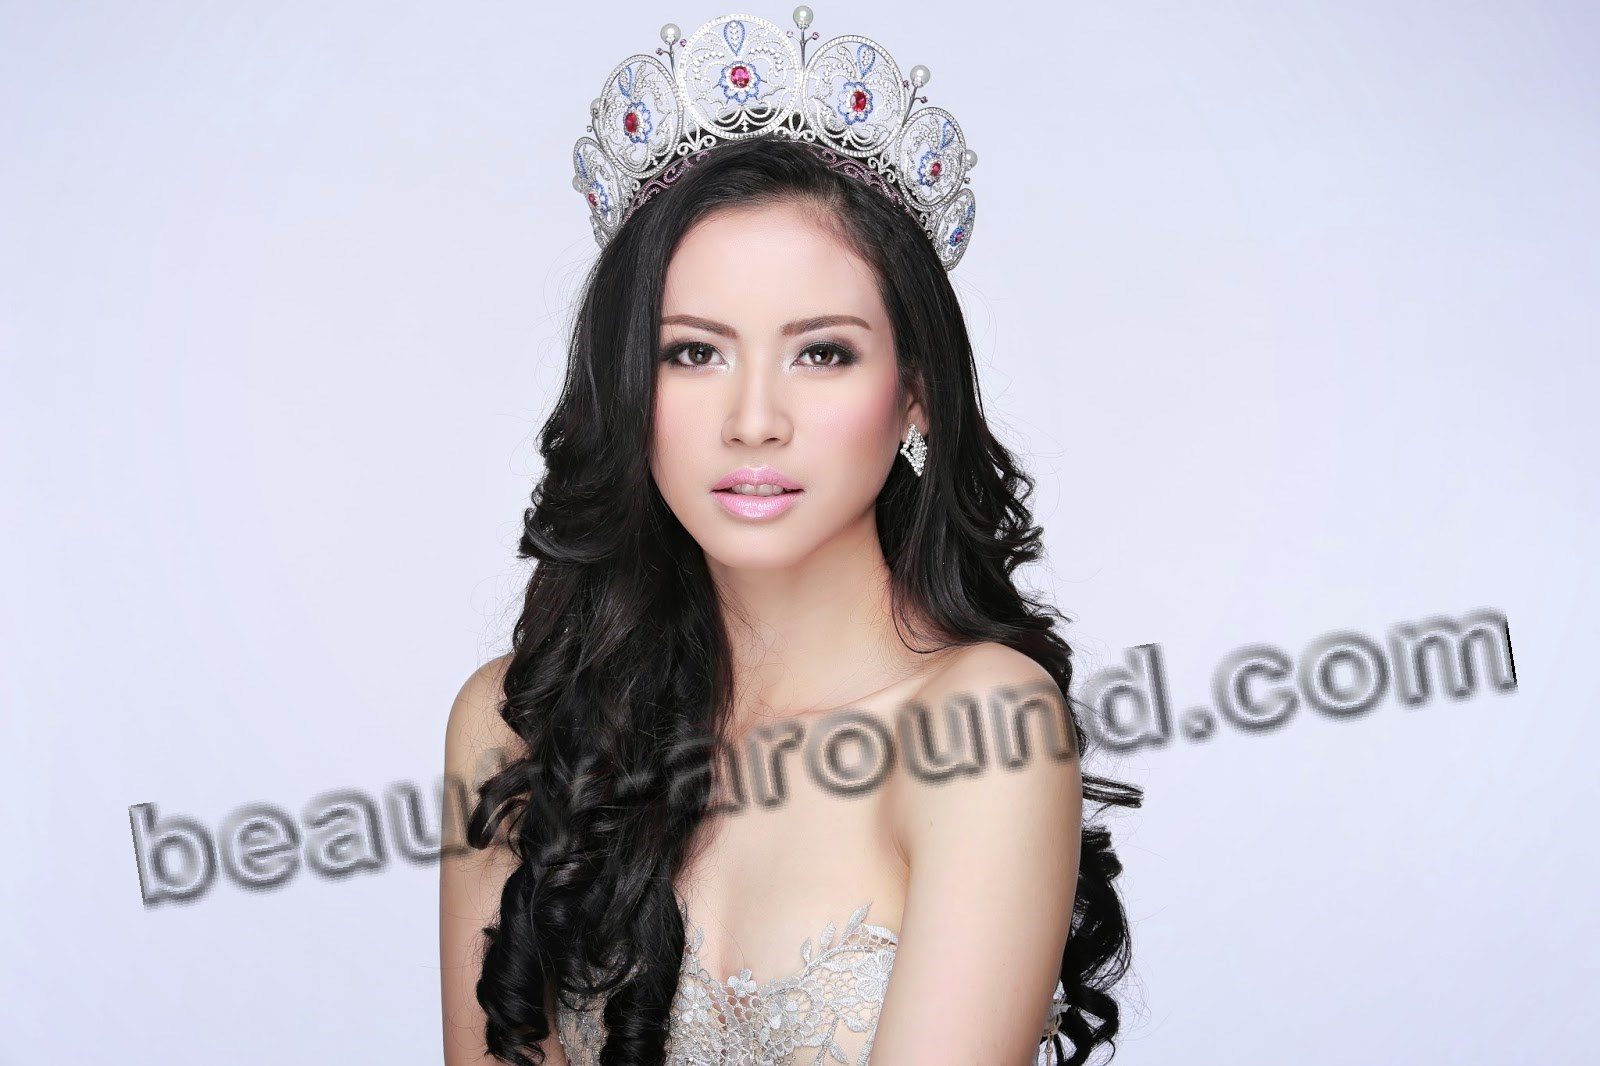 Contestants Miss Universe 2014. Elvira Devinamira Miss Indonesia 2014 photo